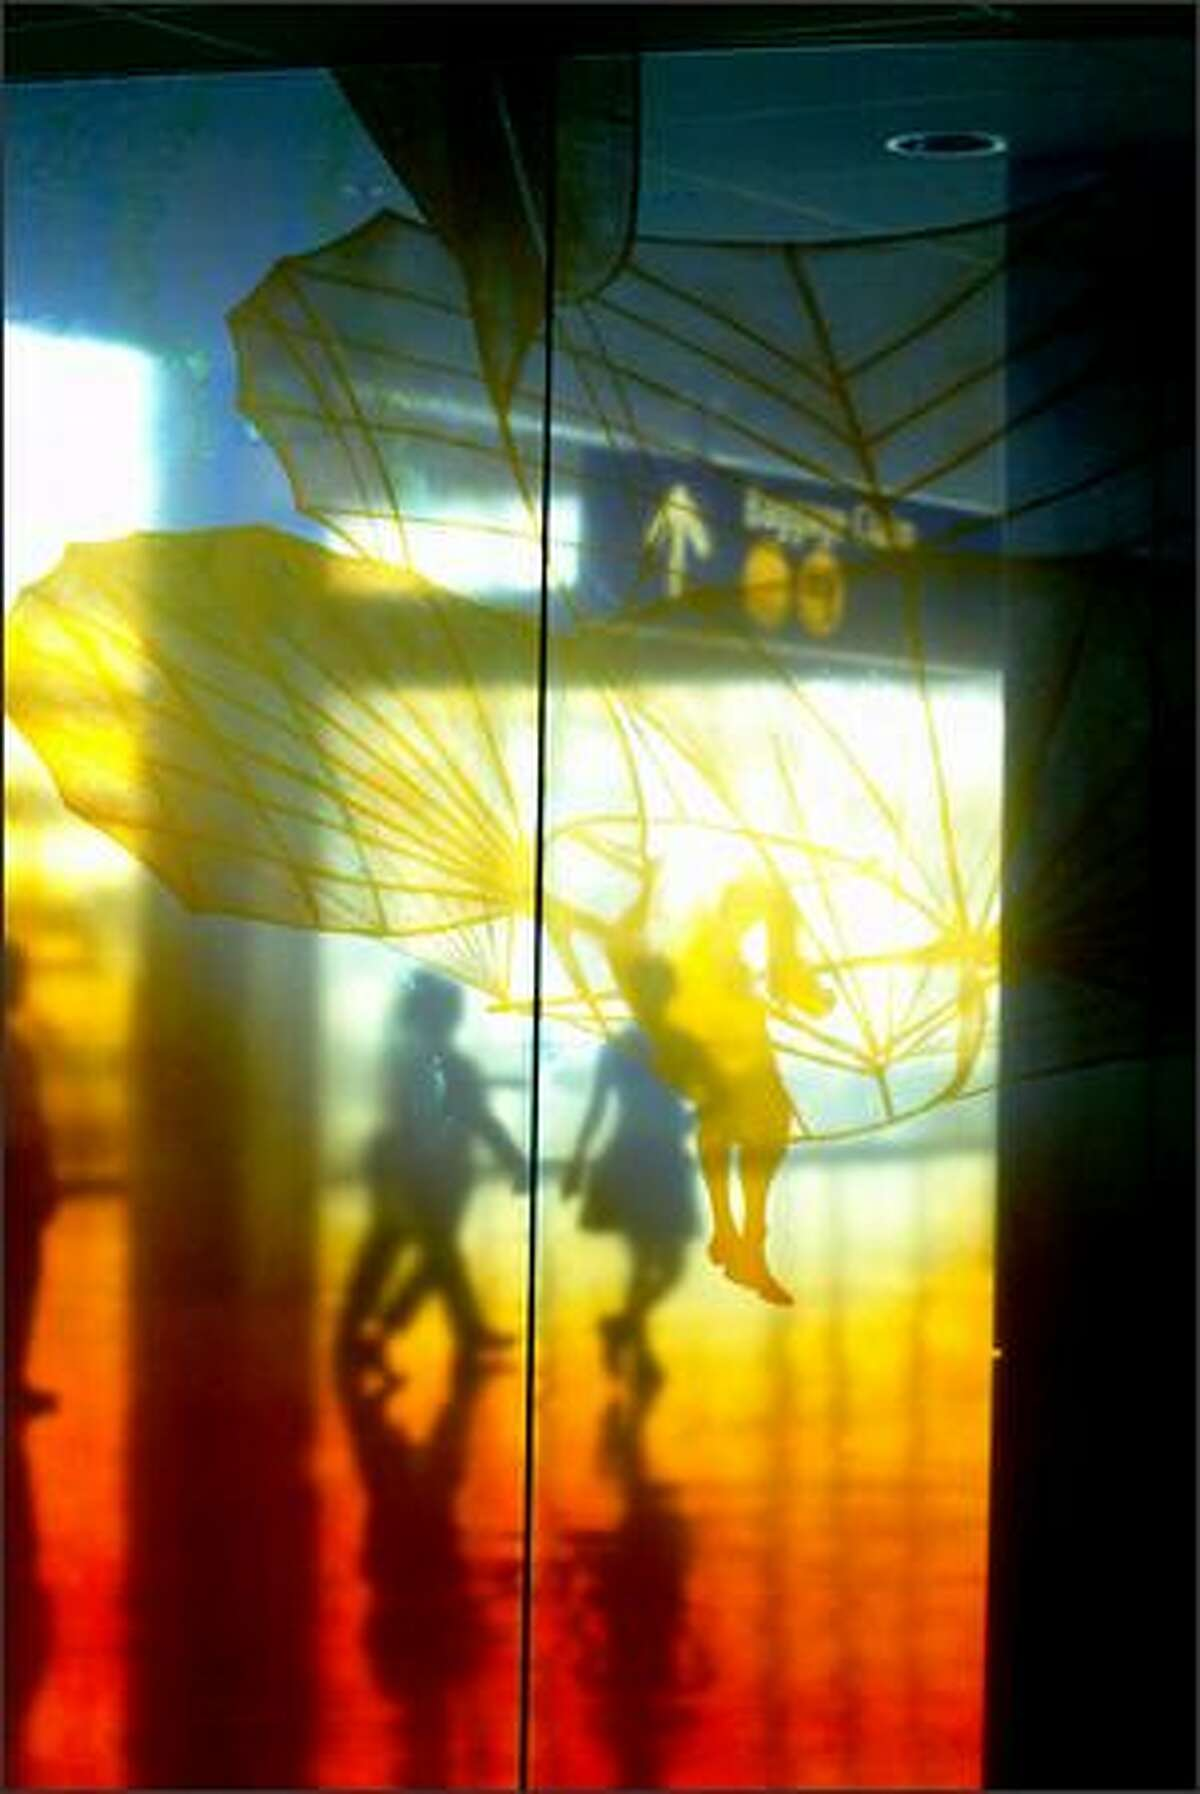 Passengers pass by the new amber glass wall installation that also serves as a security wall in the new Sea-Tac Concourse A. Linda Beaumont's